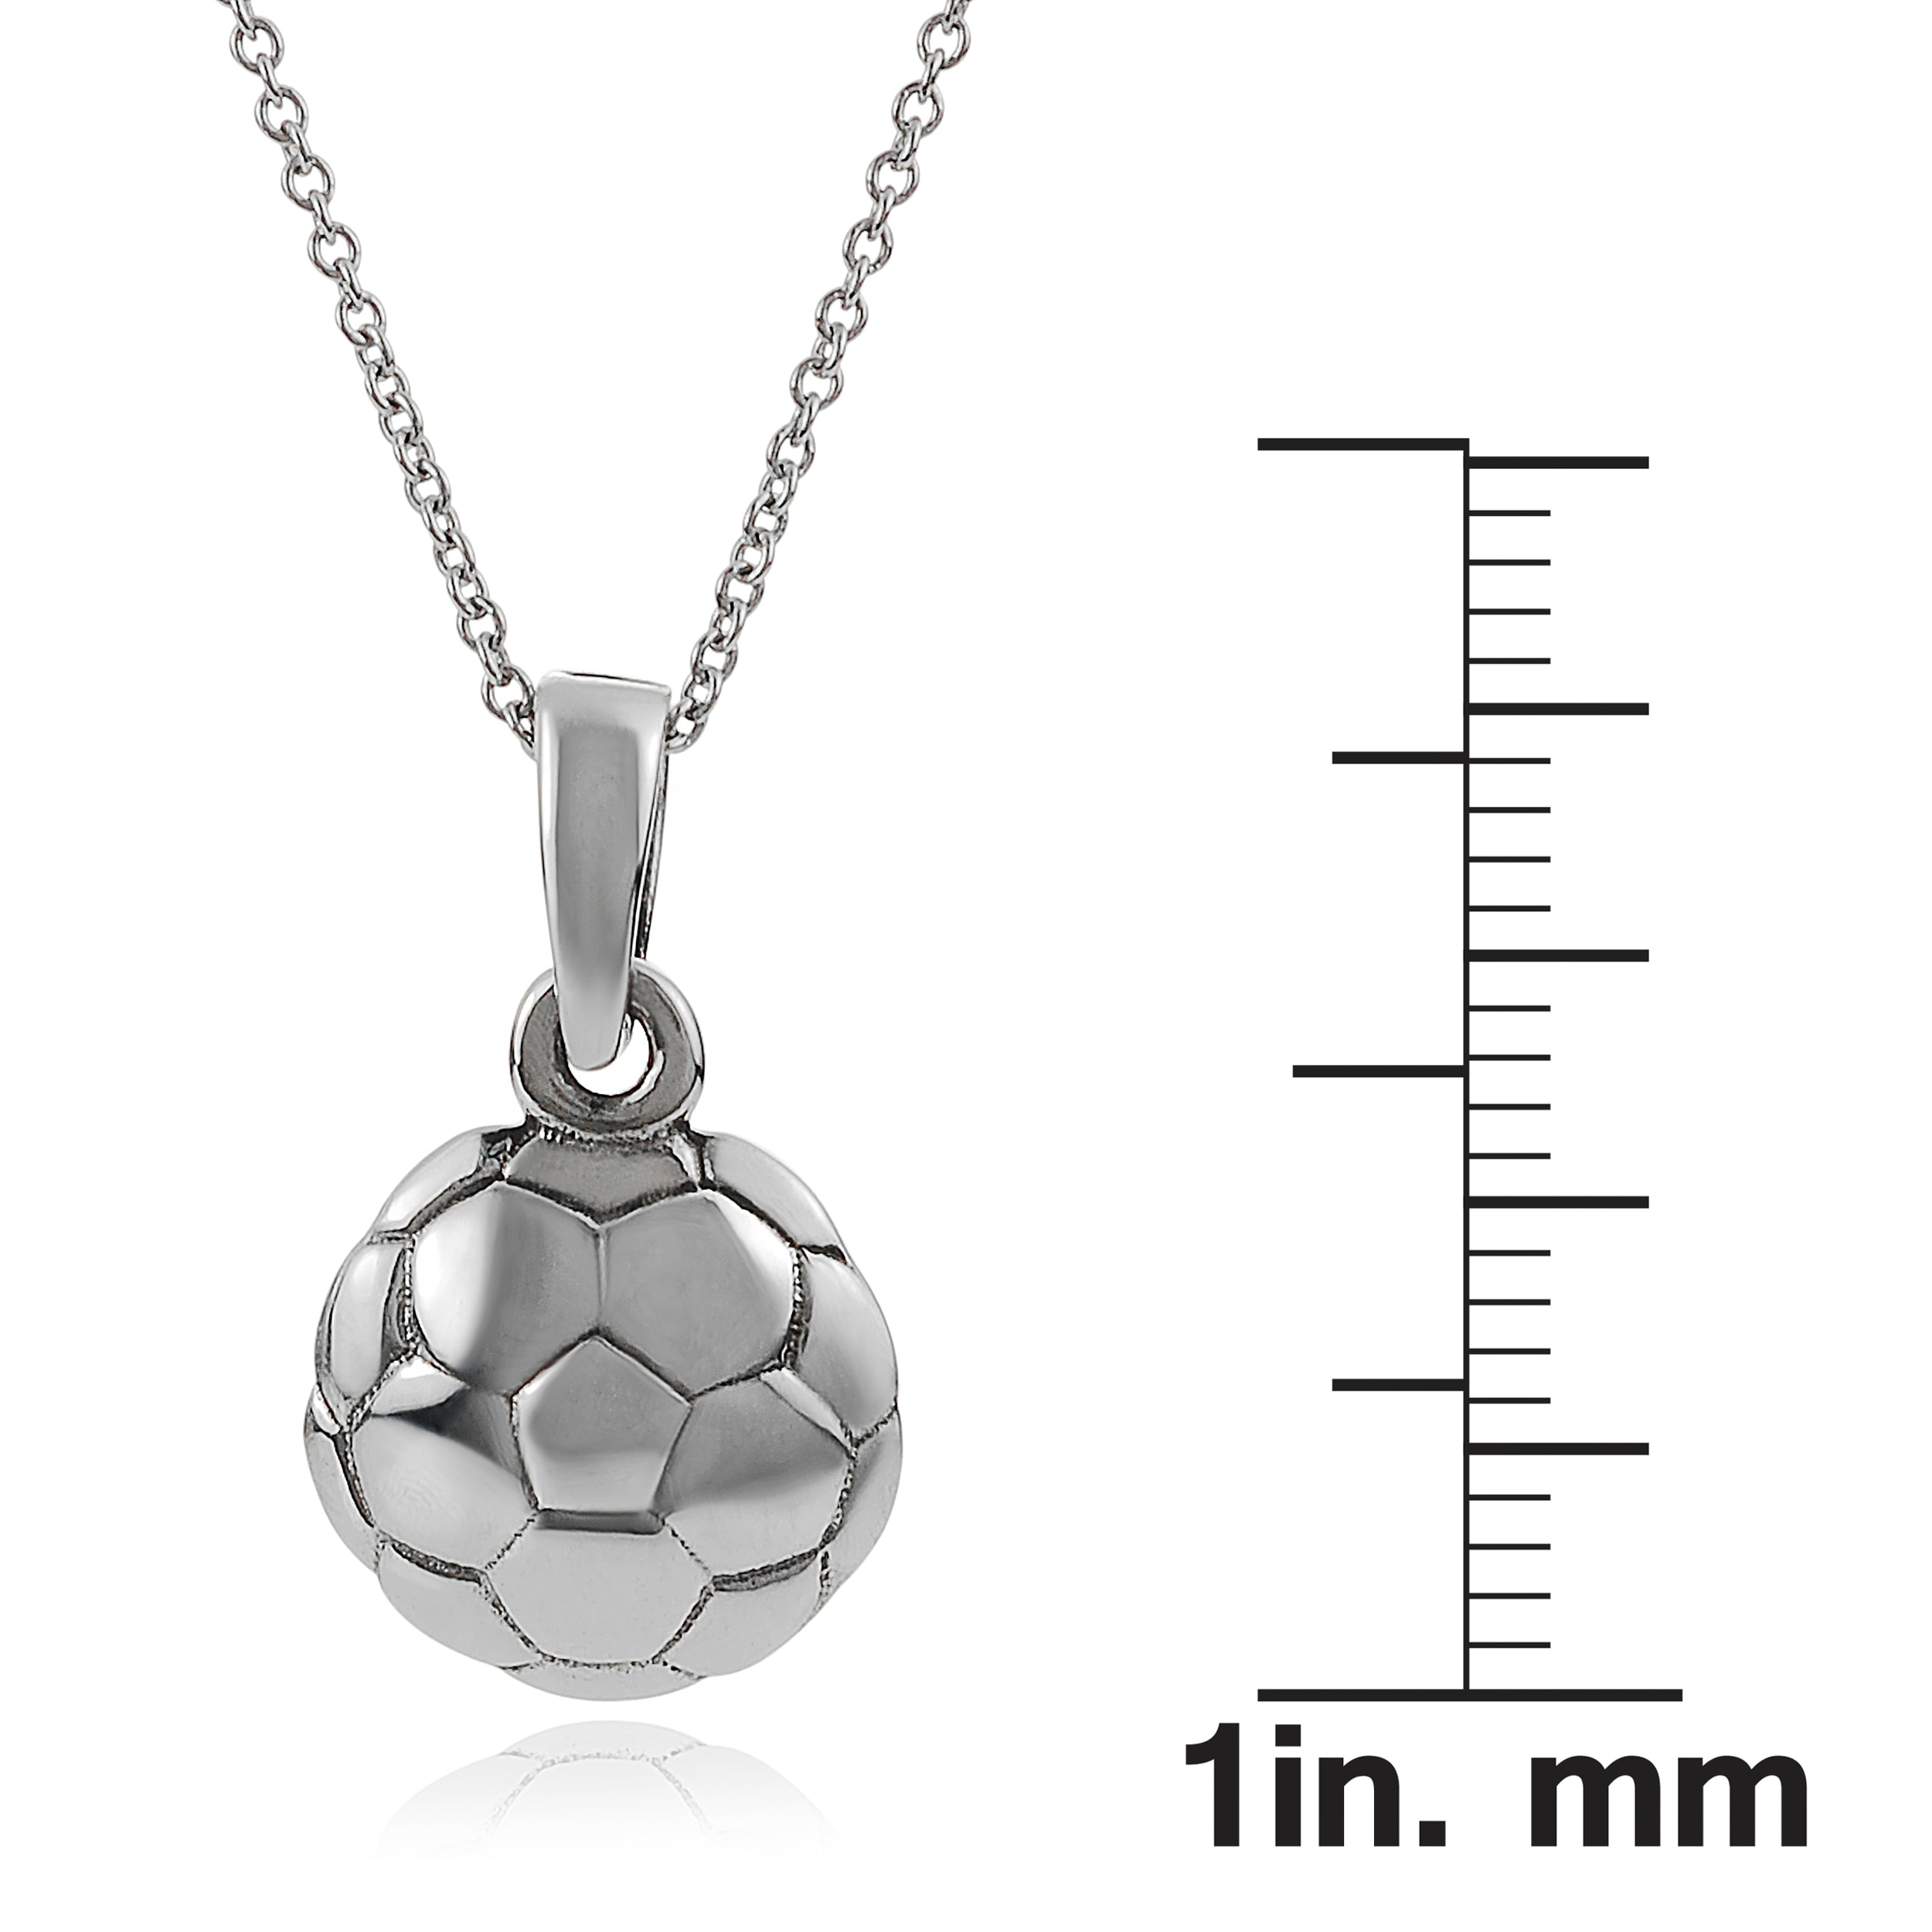 charm silver product pendant sm lariat necklace soccer neck with dangle made